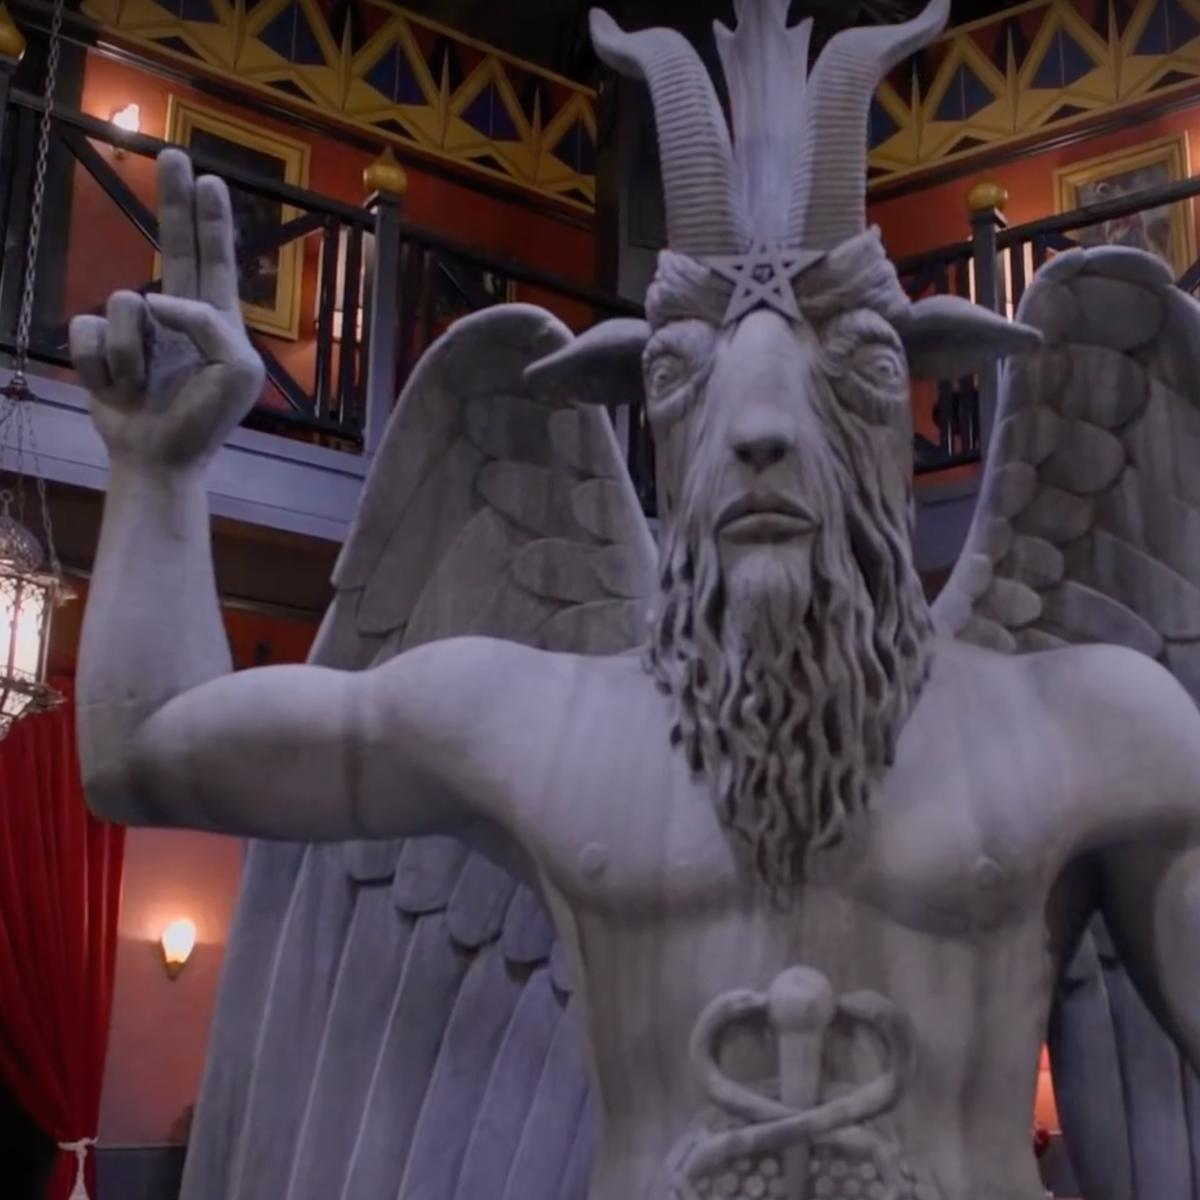 Satanic Temple claims Netflix show stole statue design, vows legal action